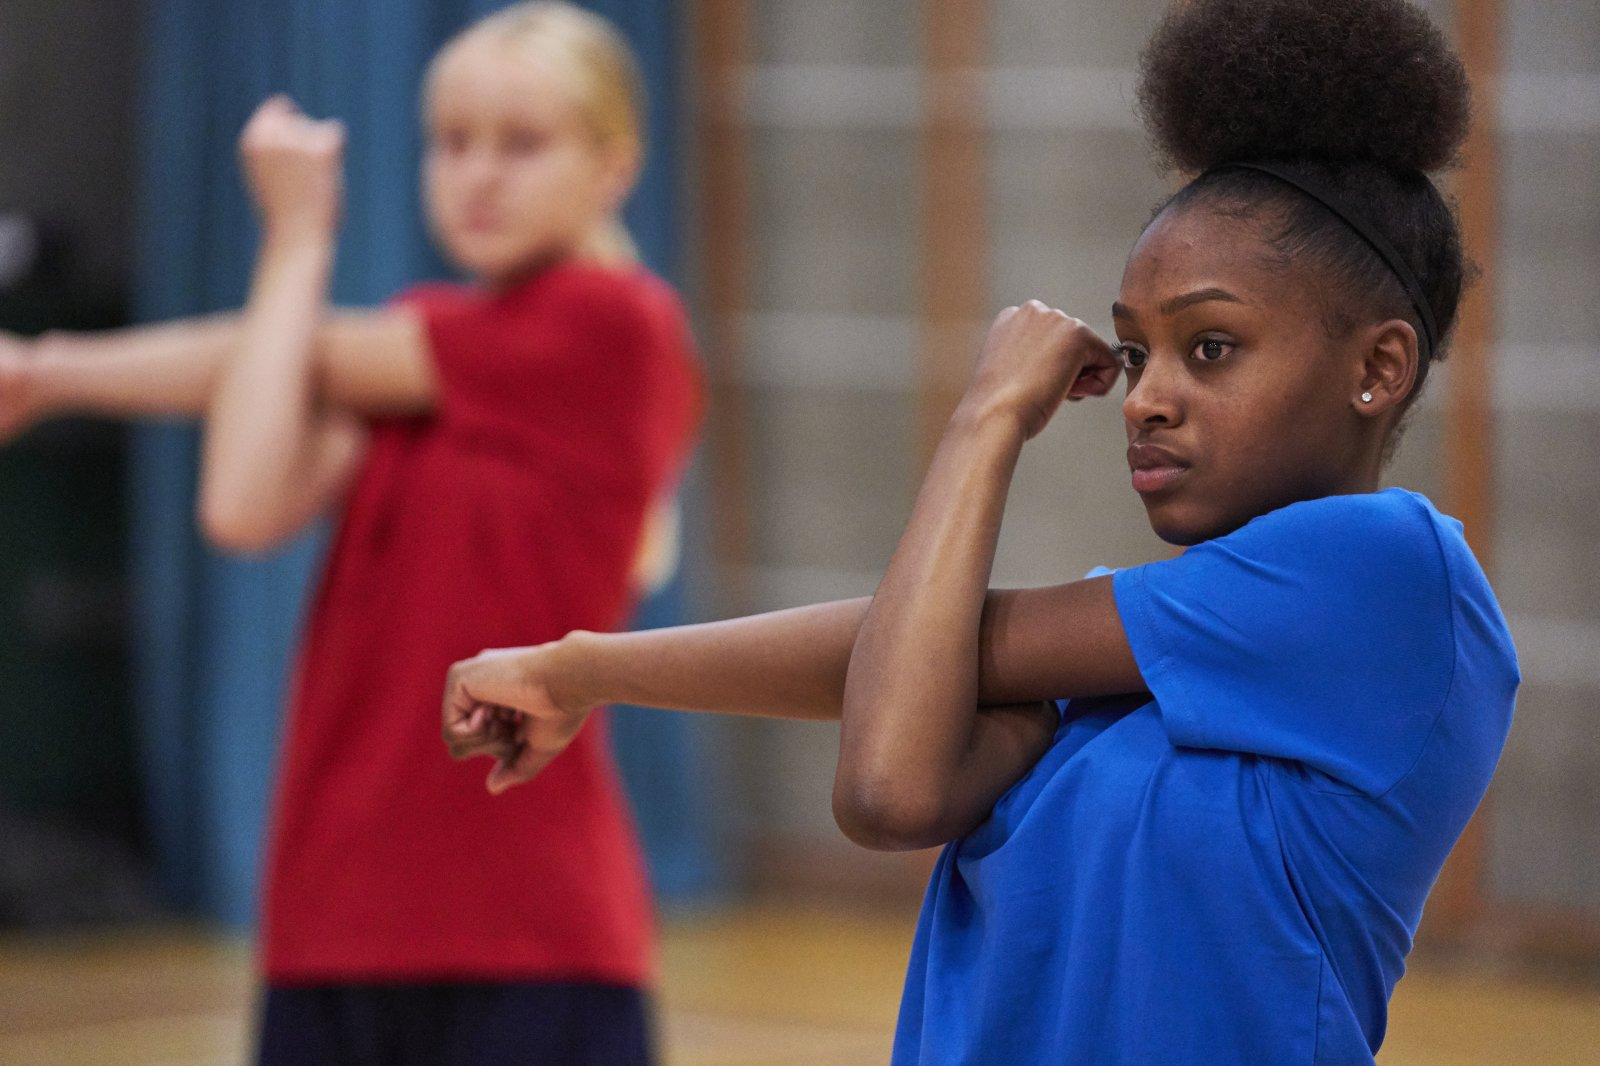 Enough is enough: why we must take action to address racial inequality in physical activity